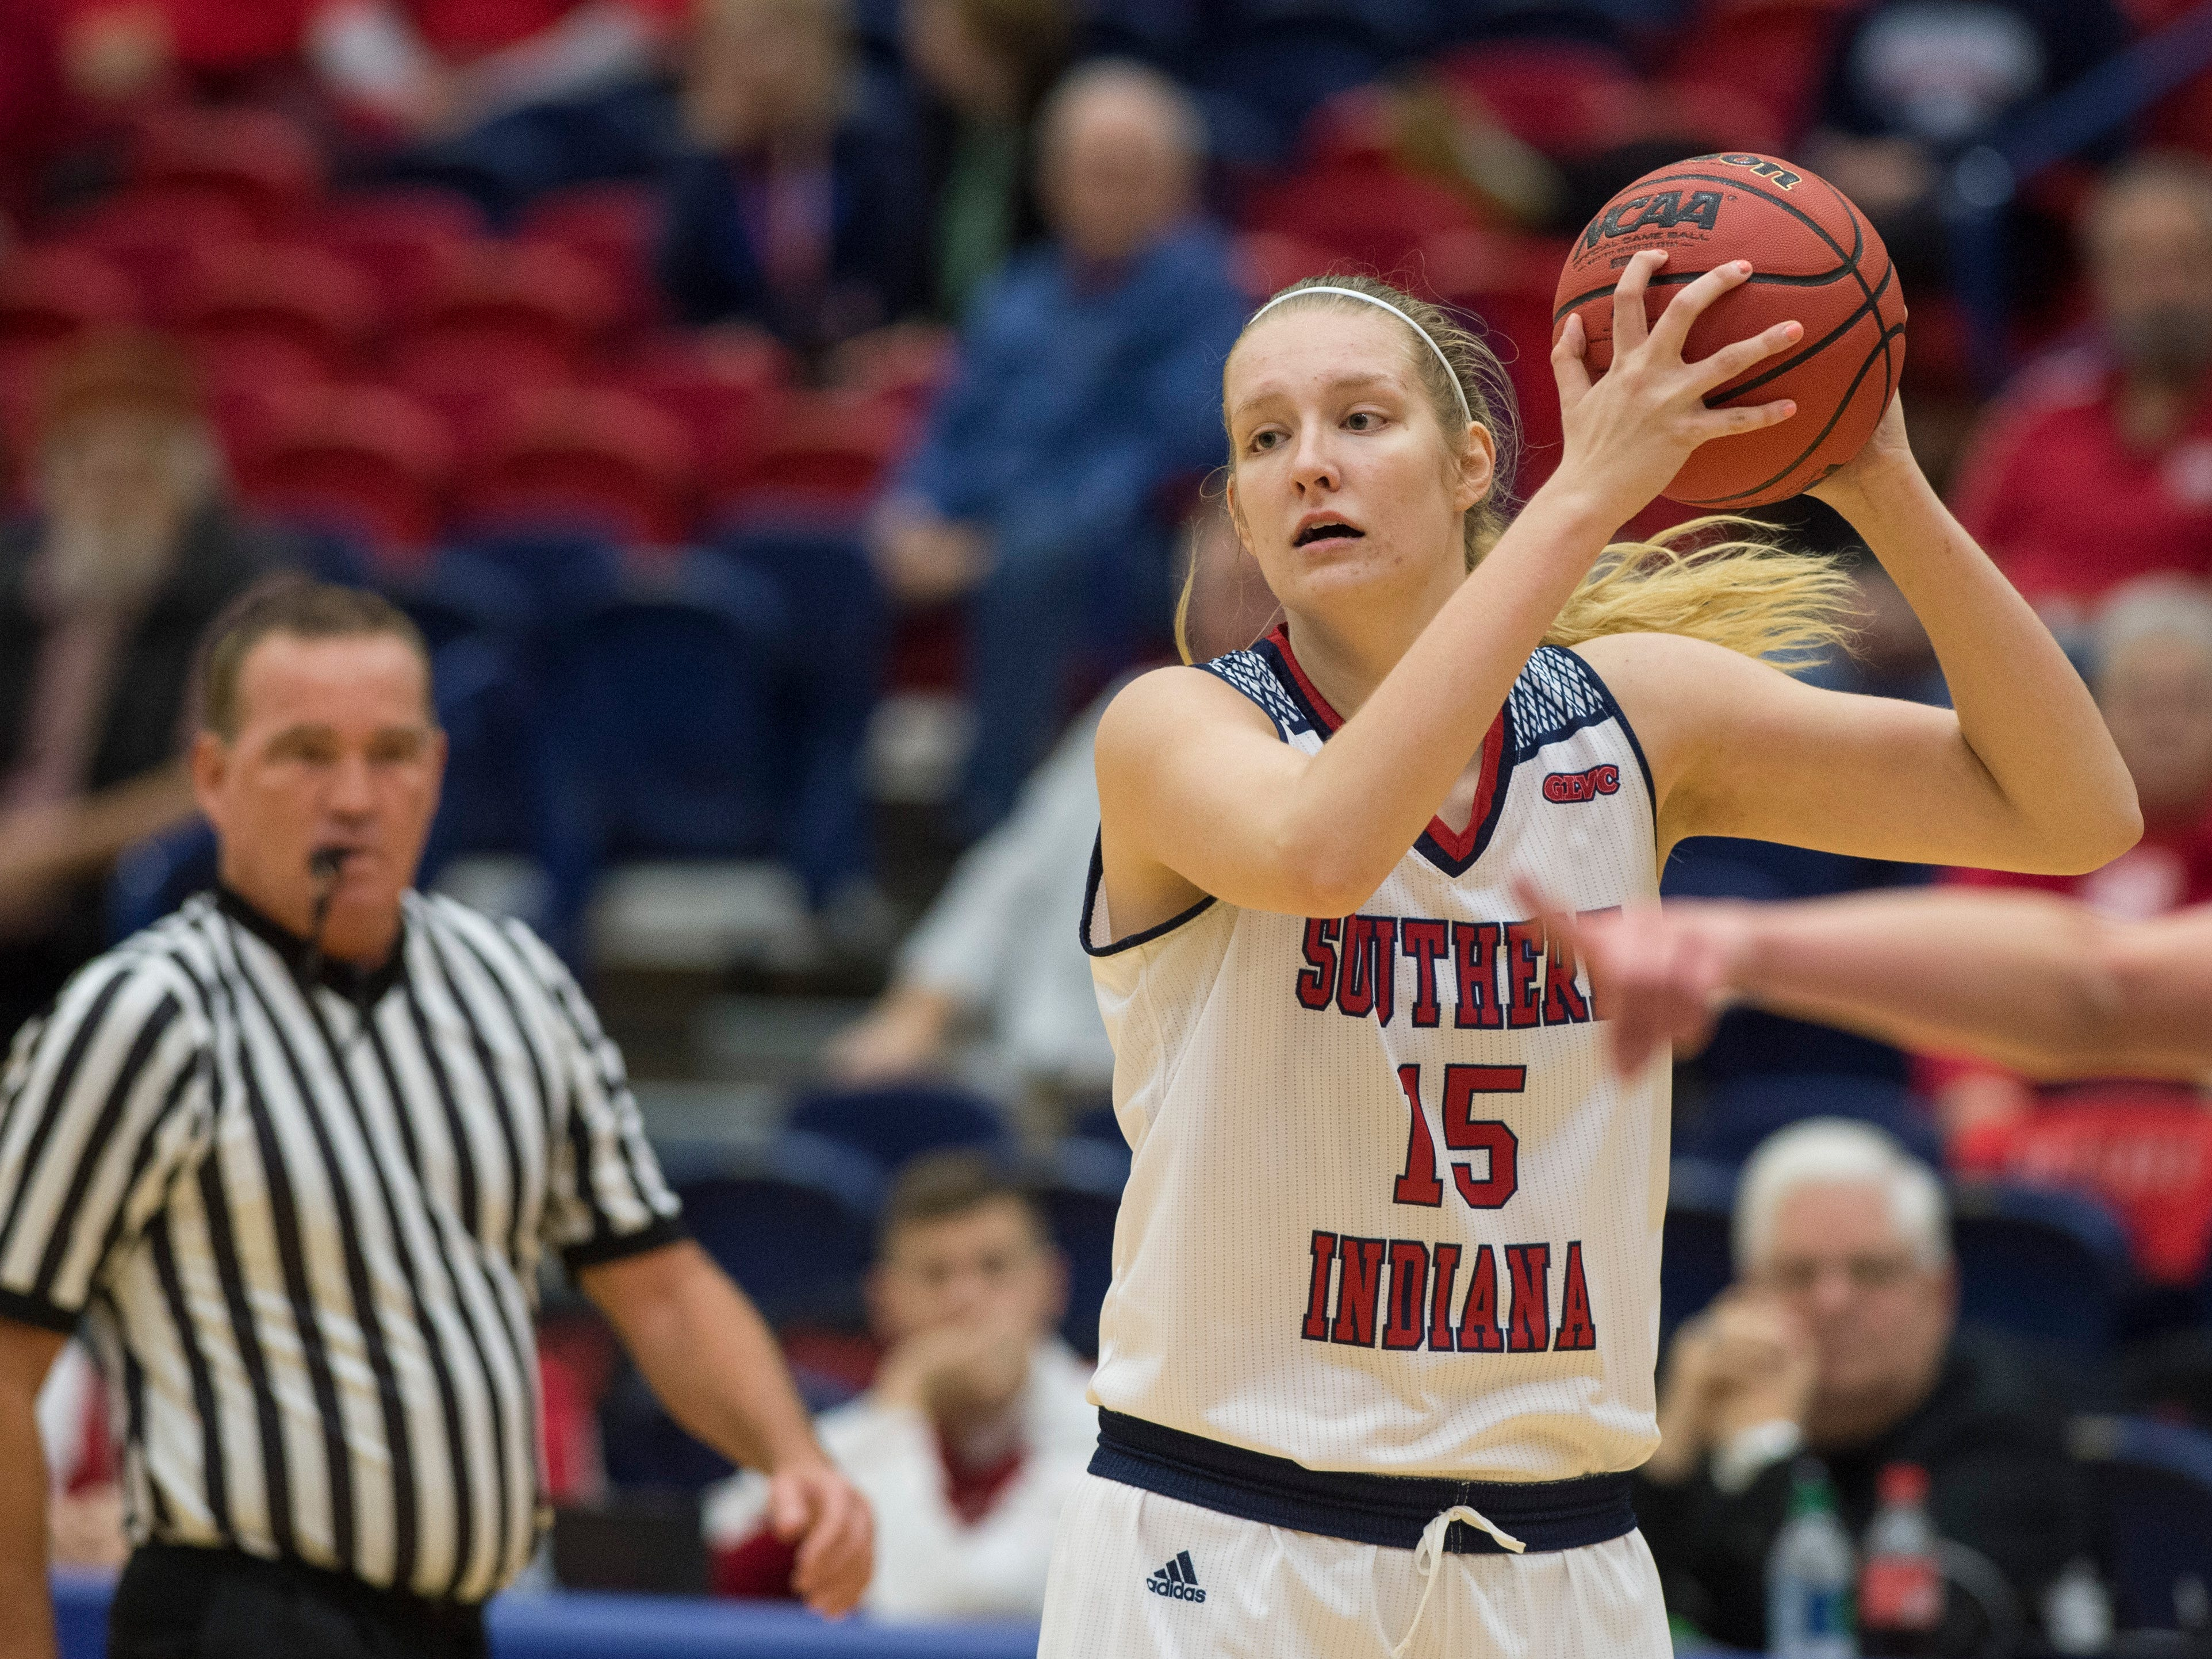 USI's Audrey Turner (15) looks to pass the ball during the USI vs Bellarmine game at the PAC Saturday, Dec. 1, 2018.